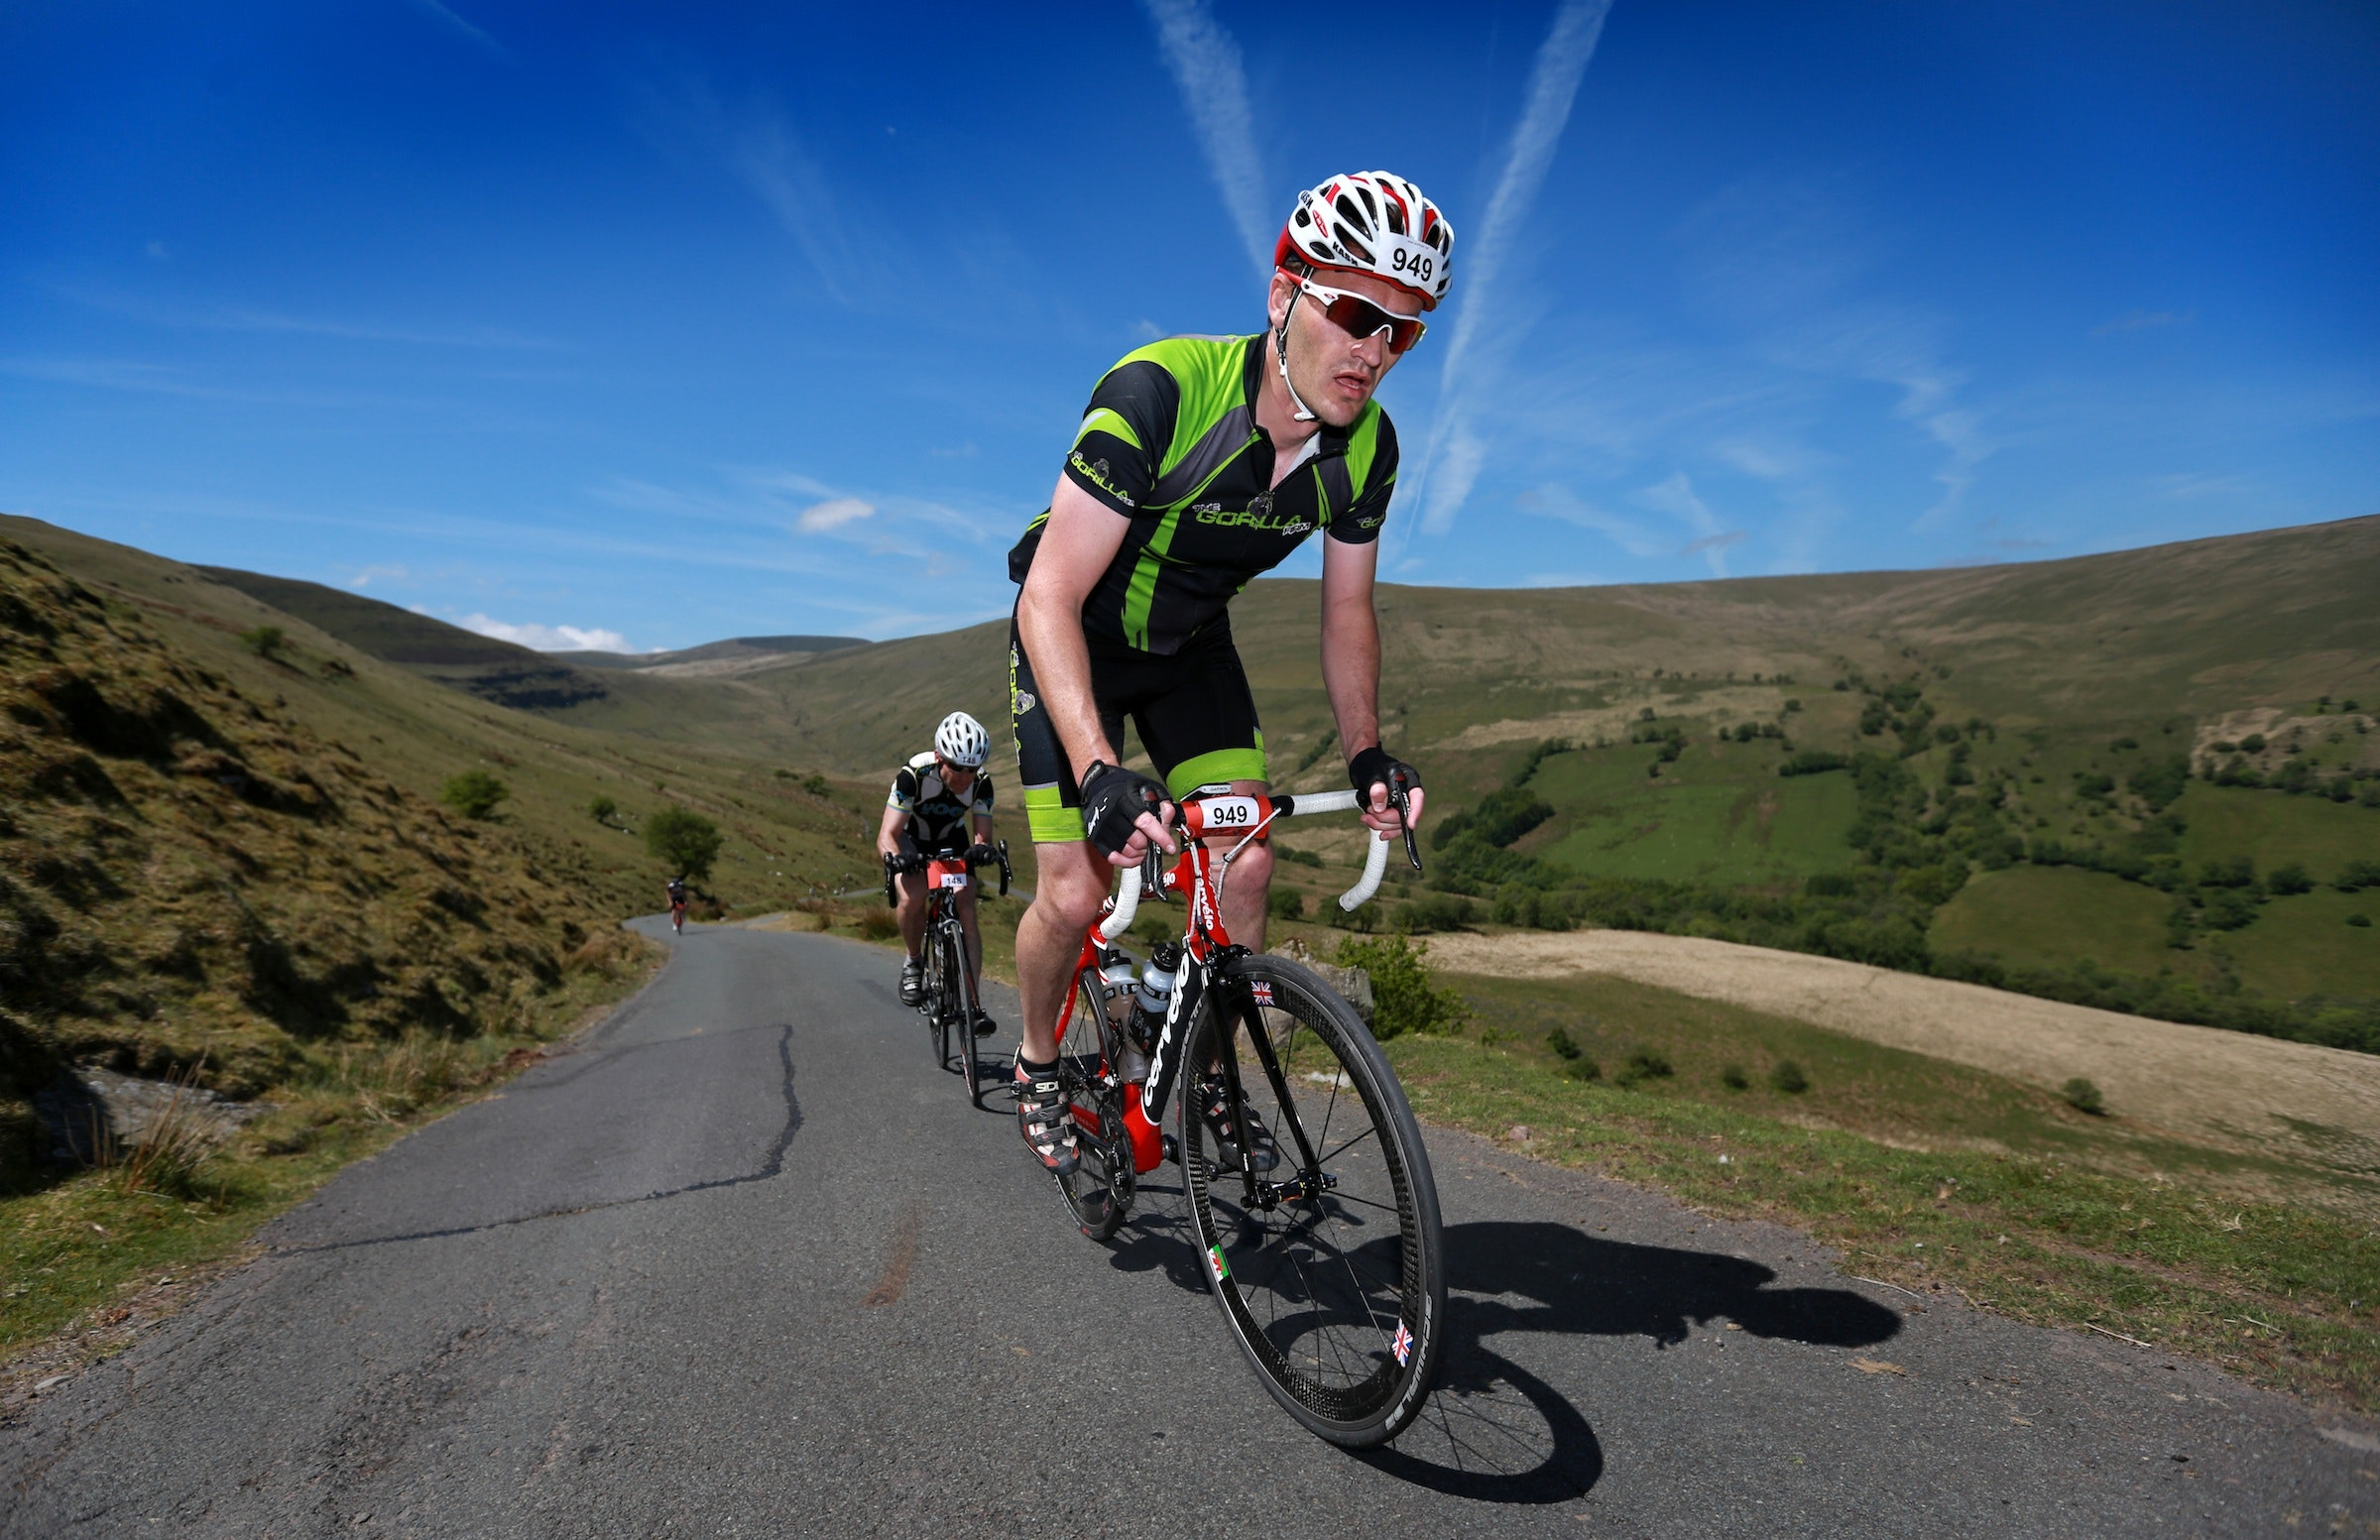 Dragon Ride 2013, Pic: ©Matt Alexander, submitted by Chris Etchells, Human Race